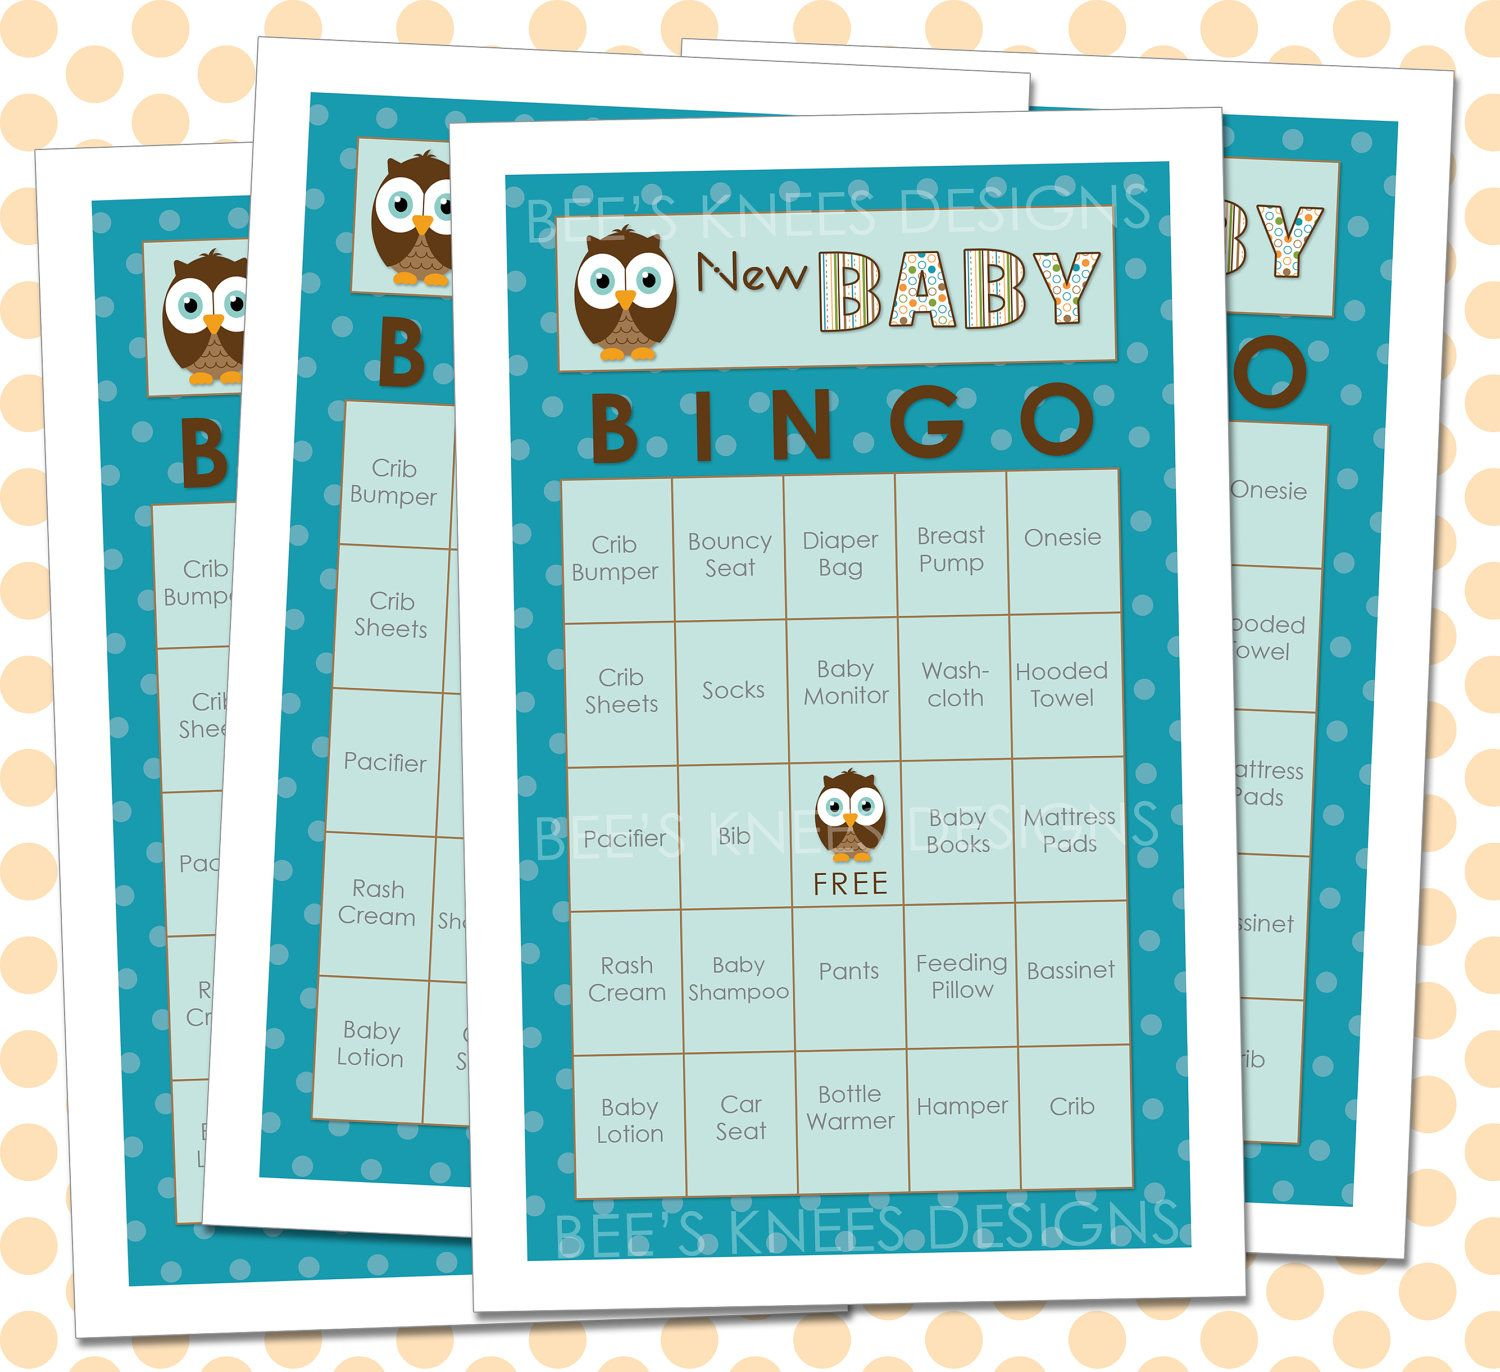 Baby shower bingo owl themed you print 699 via etsy create baby shower bingo owl themed you print 699 via etsy solutioingenieria Gallery